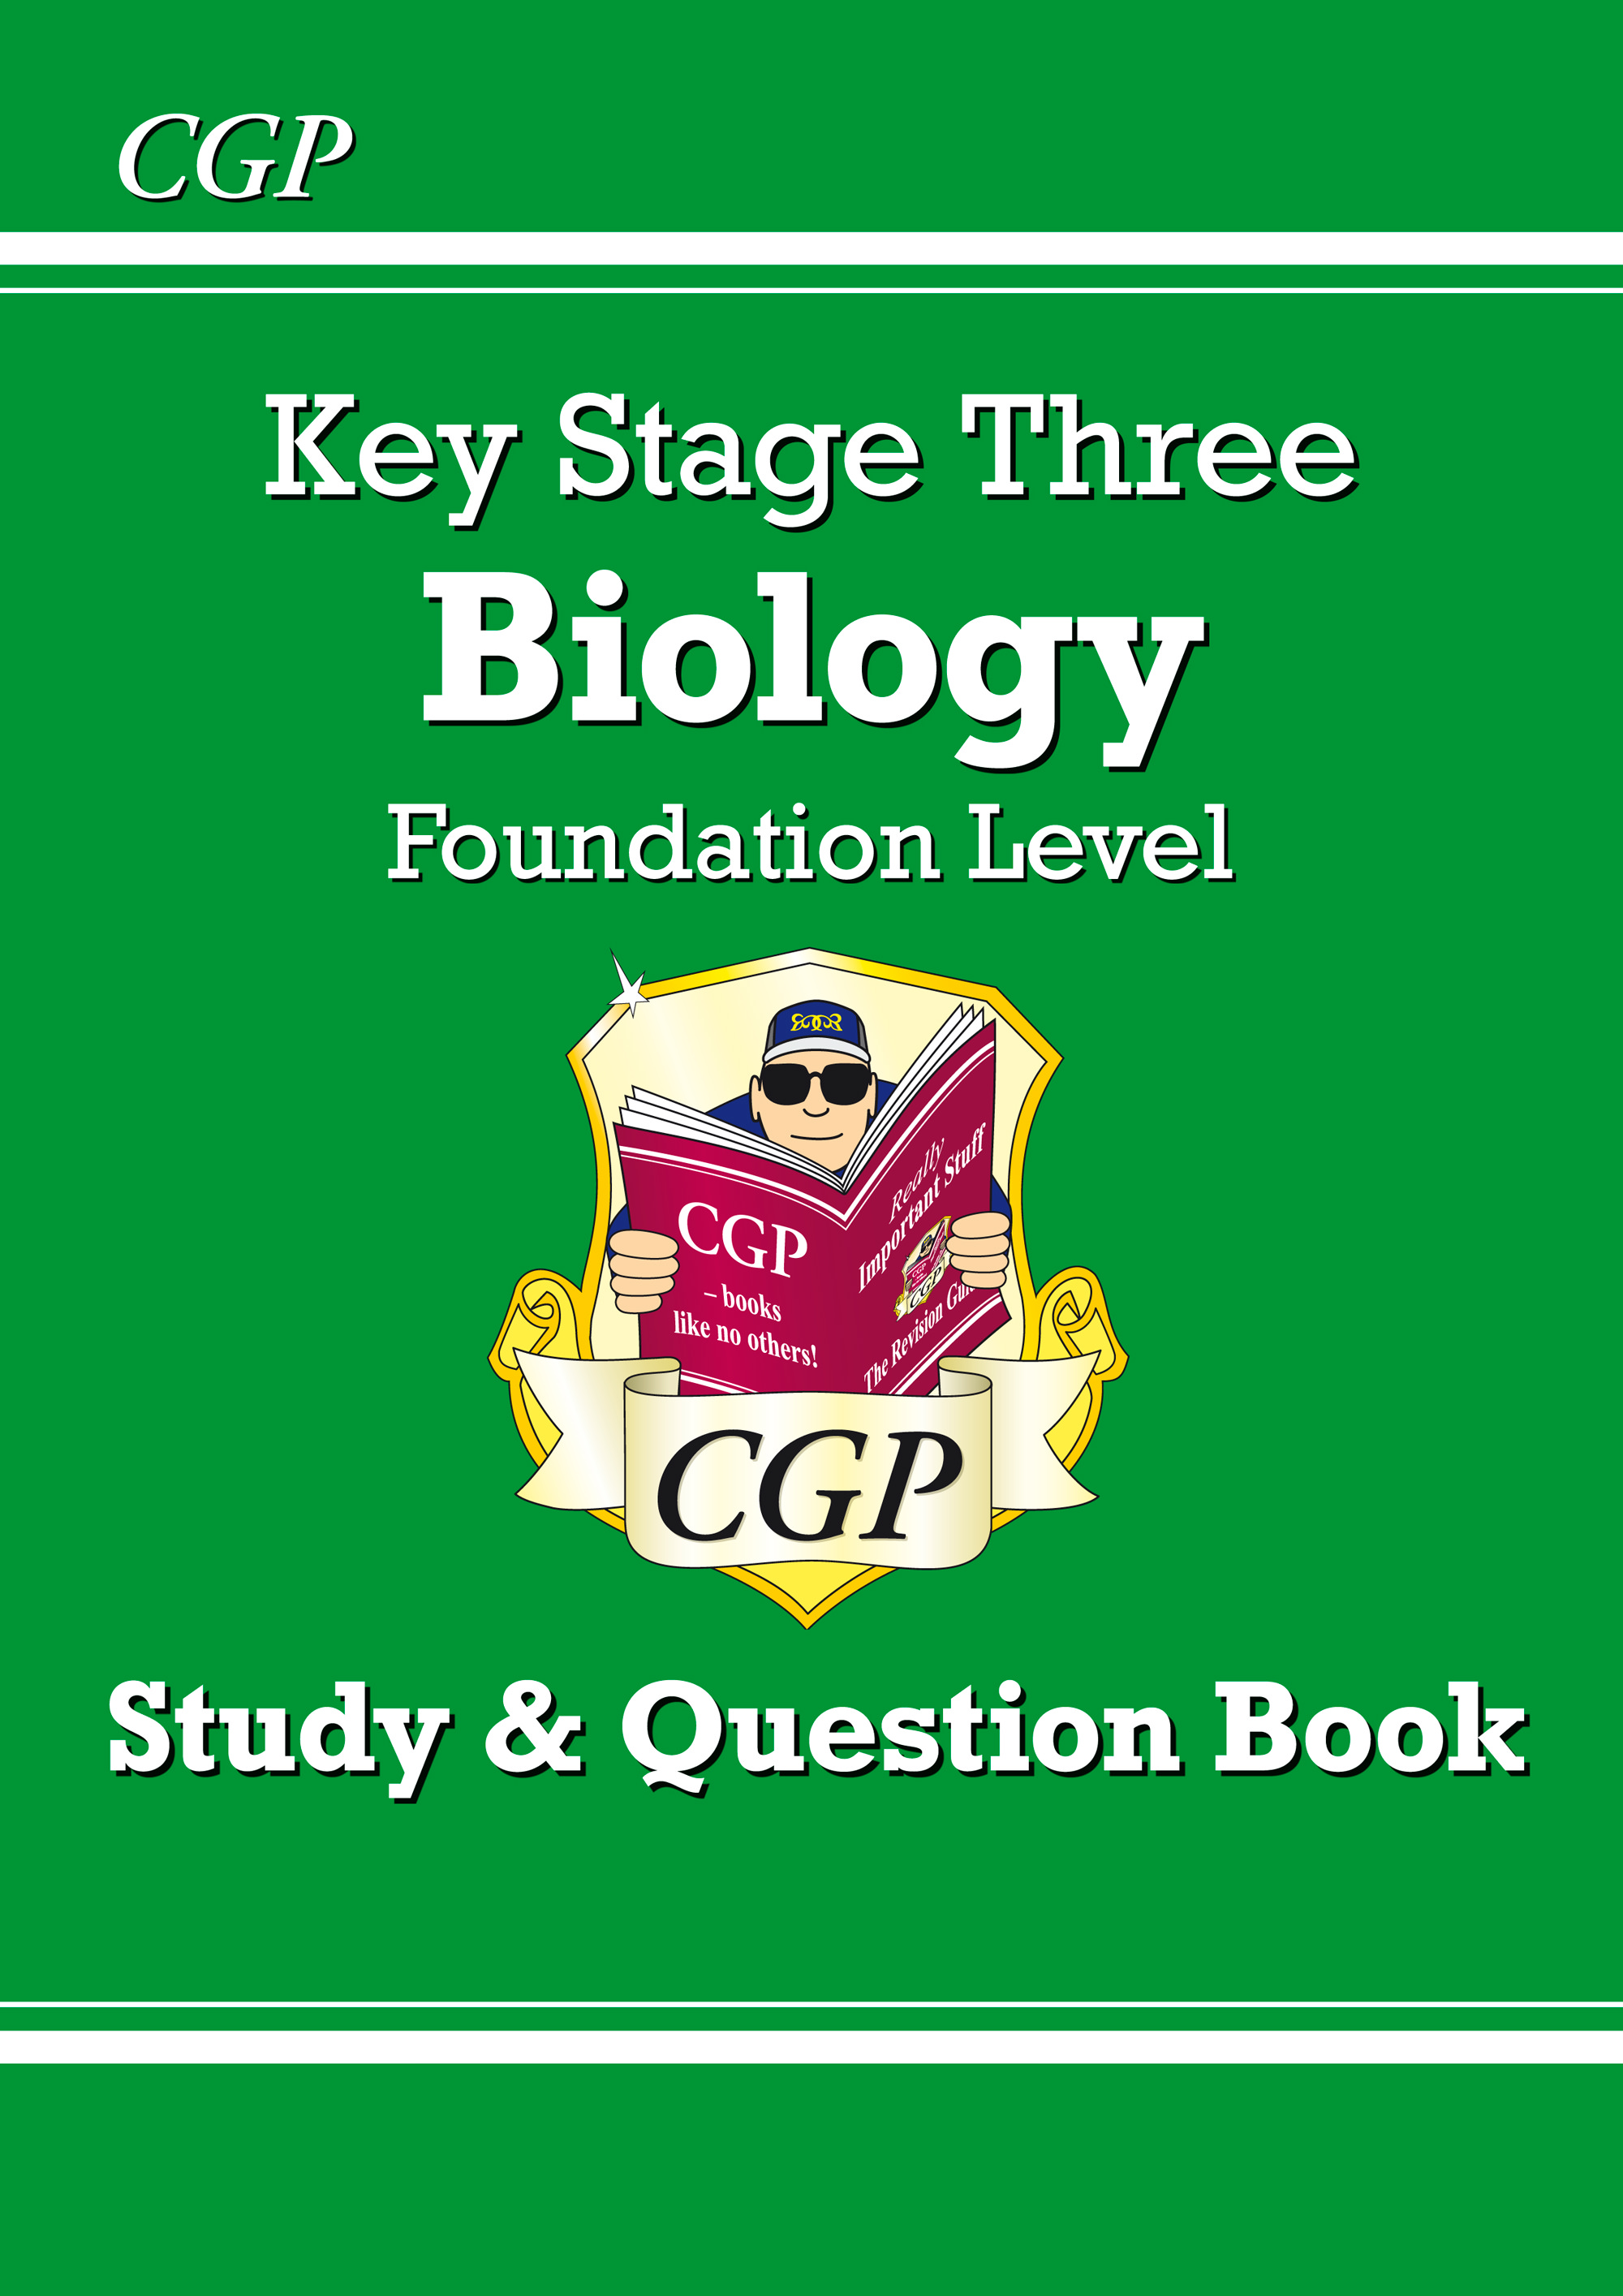 BFQ32 - KS3 Biology Study & Question Book - Foundation